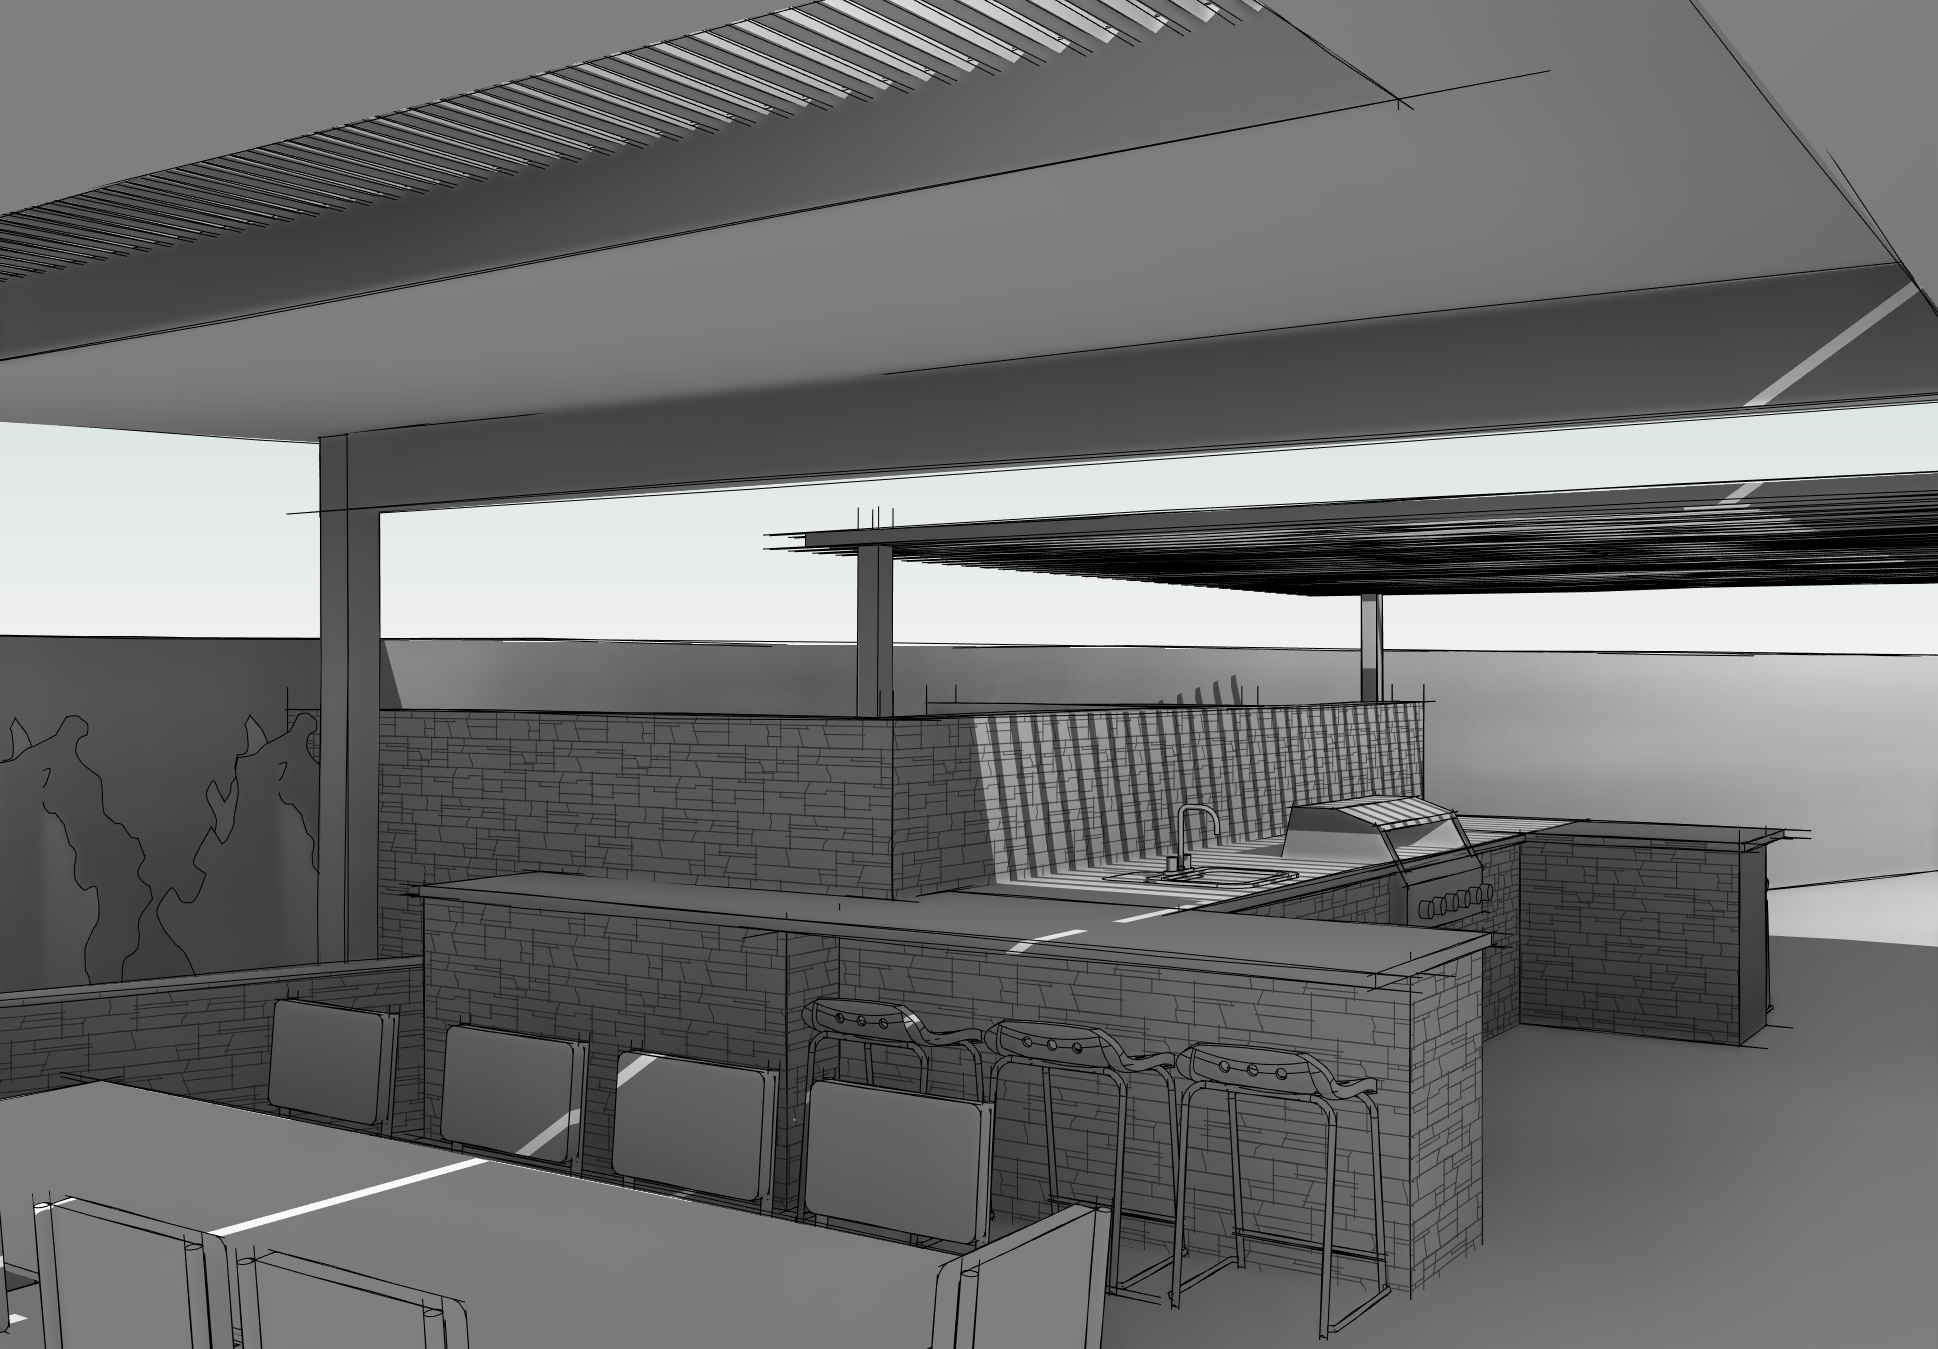 Looking over Dining Area toward BBQ Area